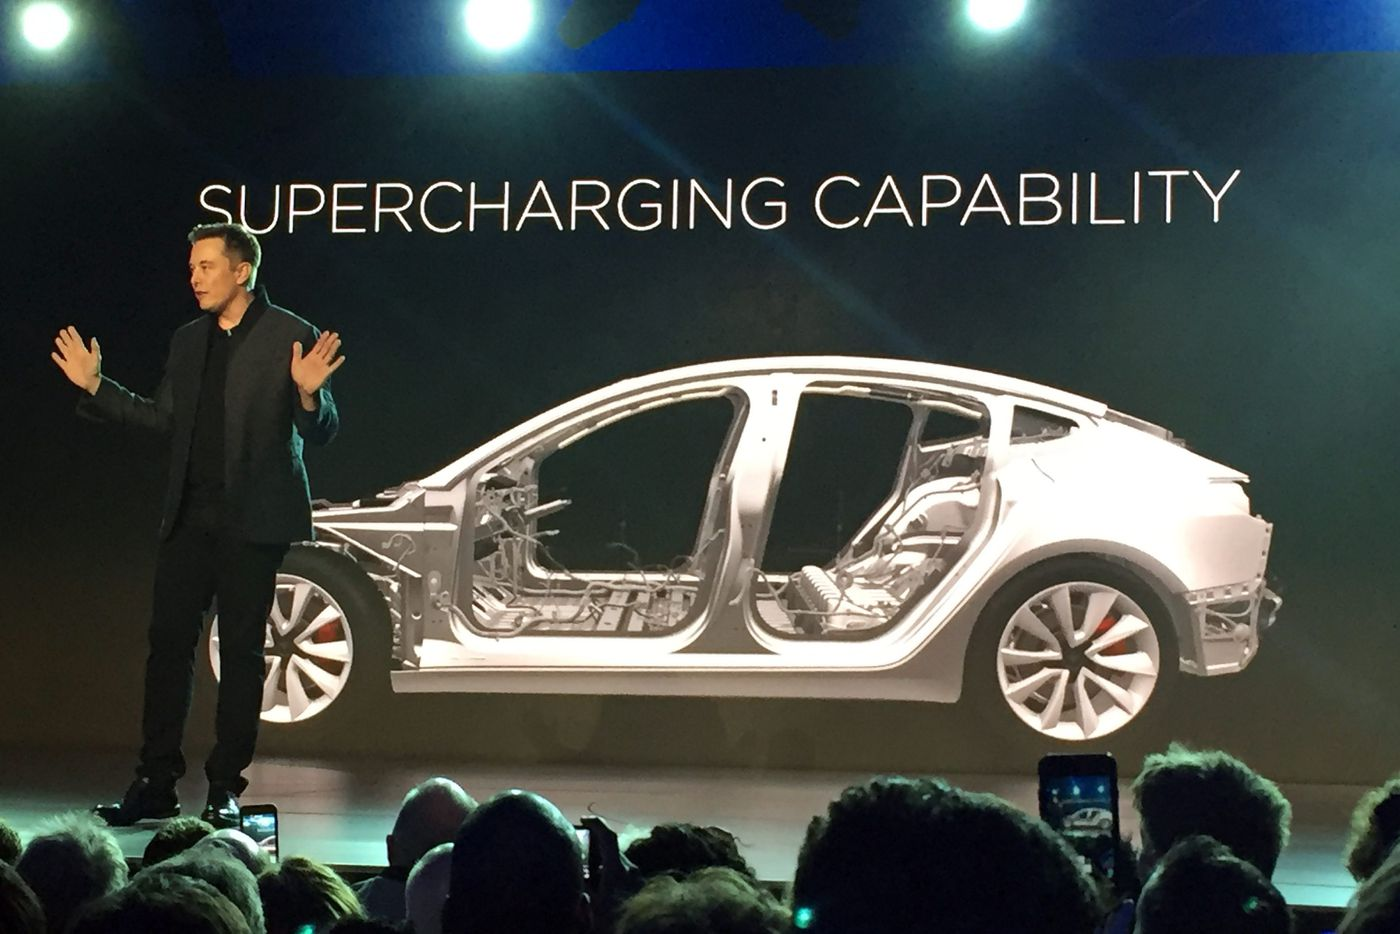 Tesla CEO Elon Musk says he may take the electric car maker private